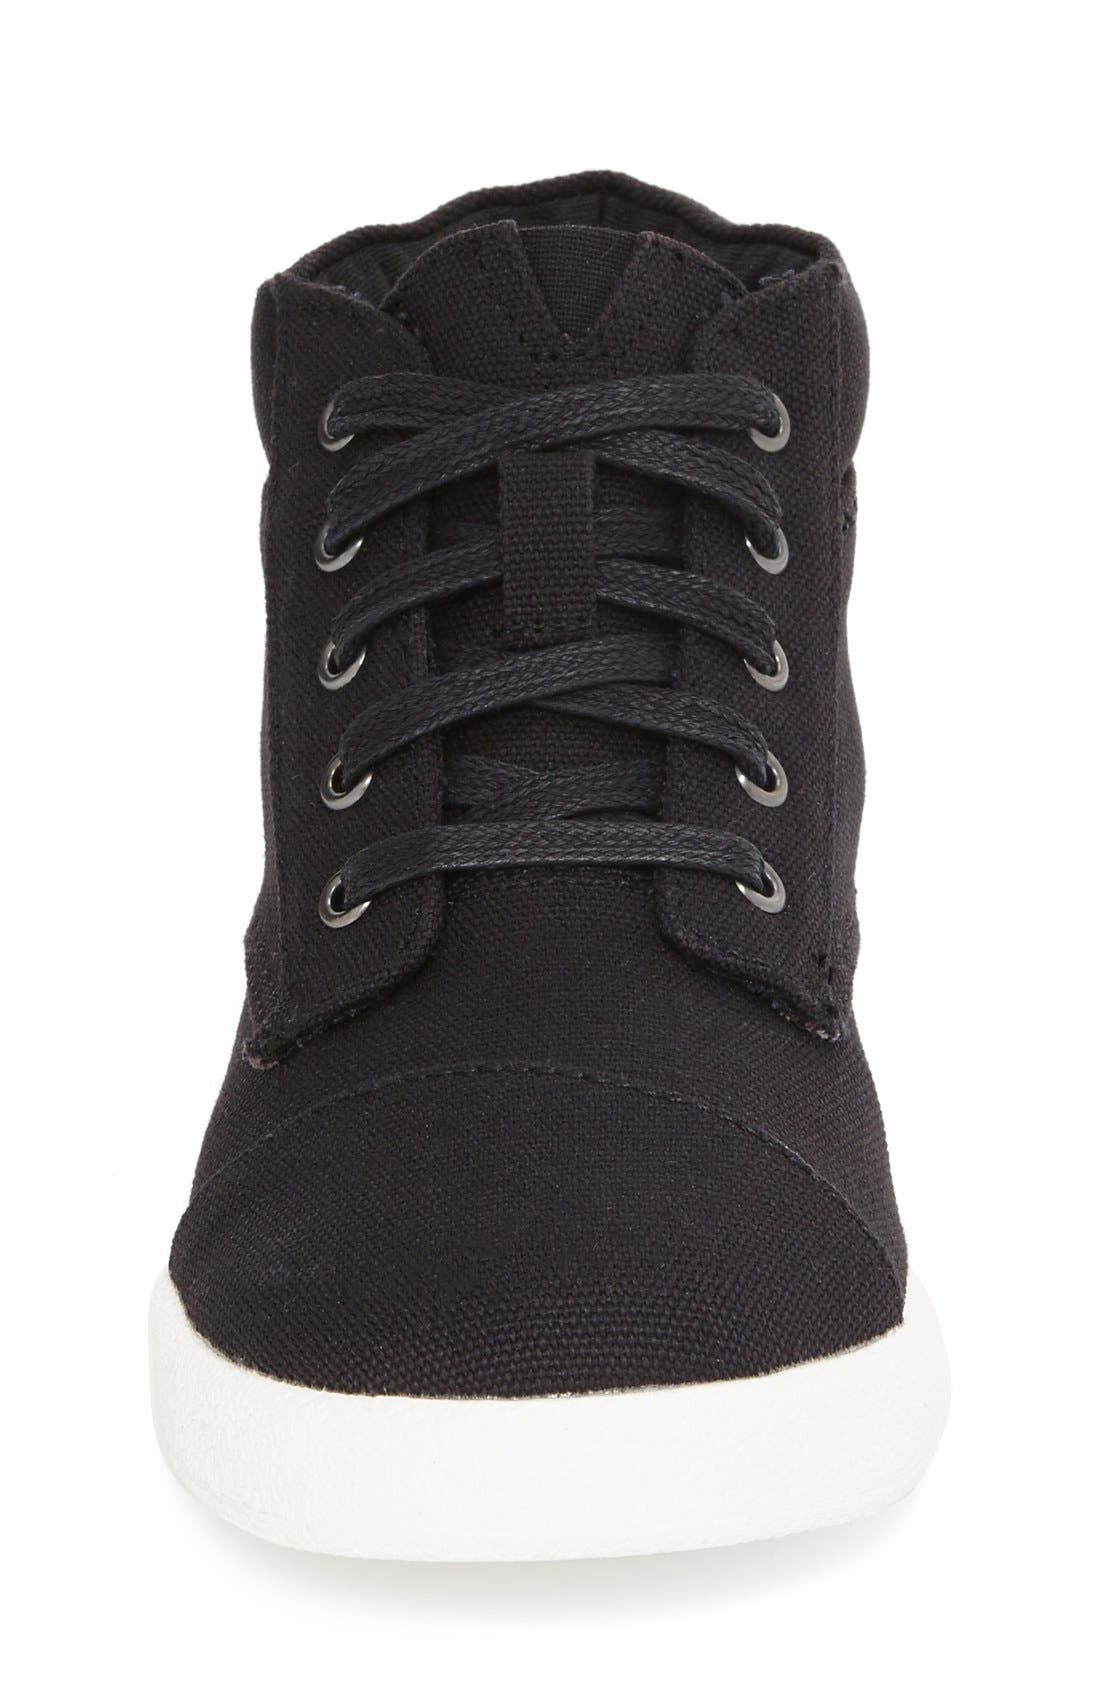 Alternate Image 3  - TOMS 'Paseo' High Top Sneaker (Toddler, Little Kid & Big Kid)